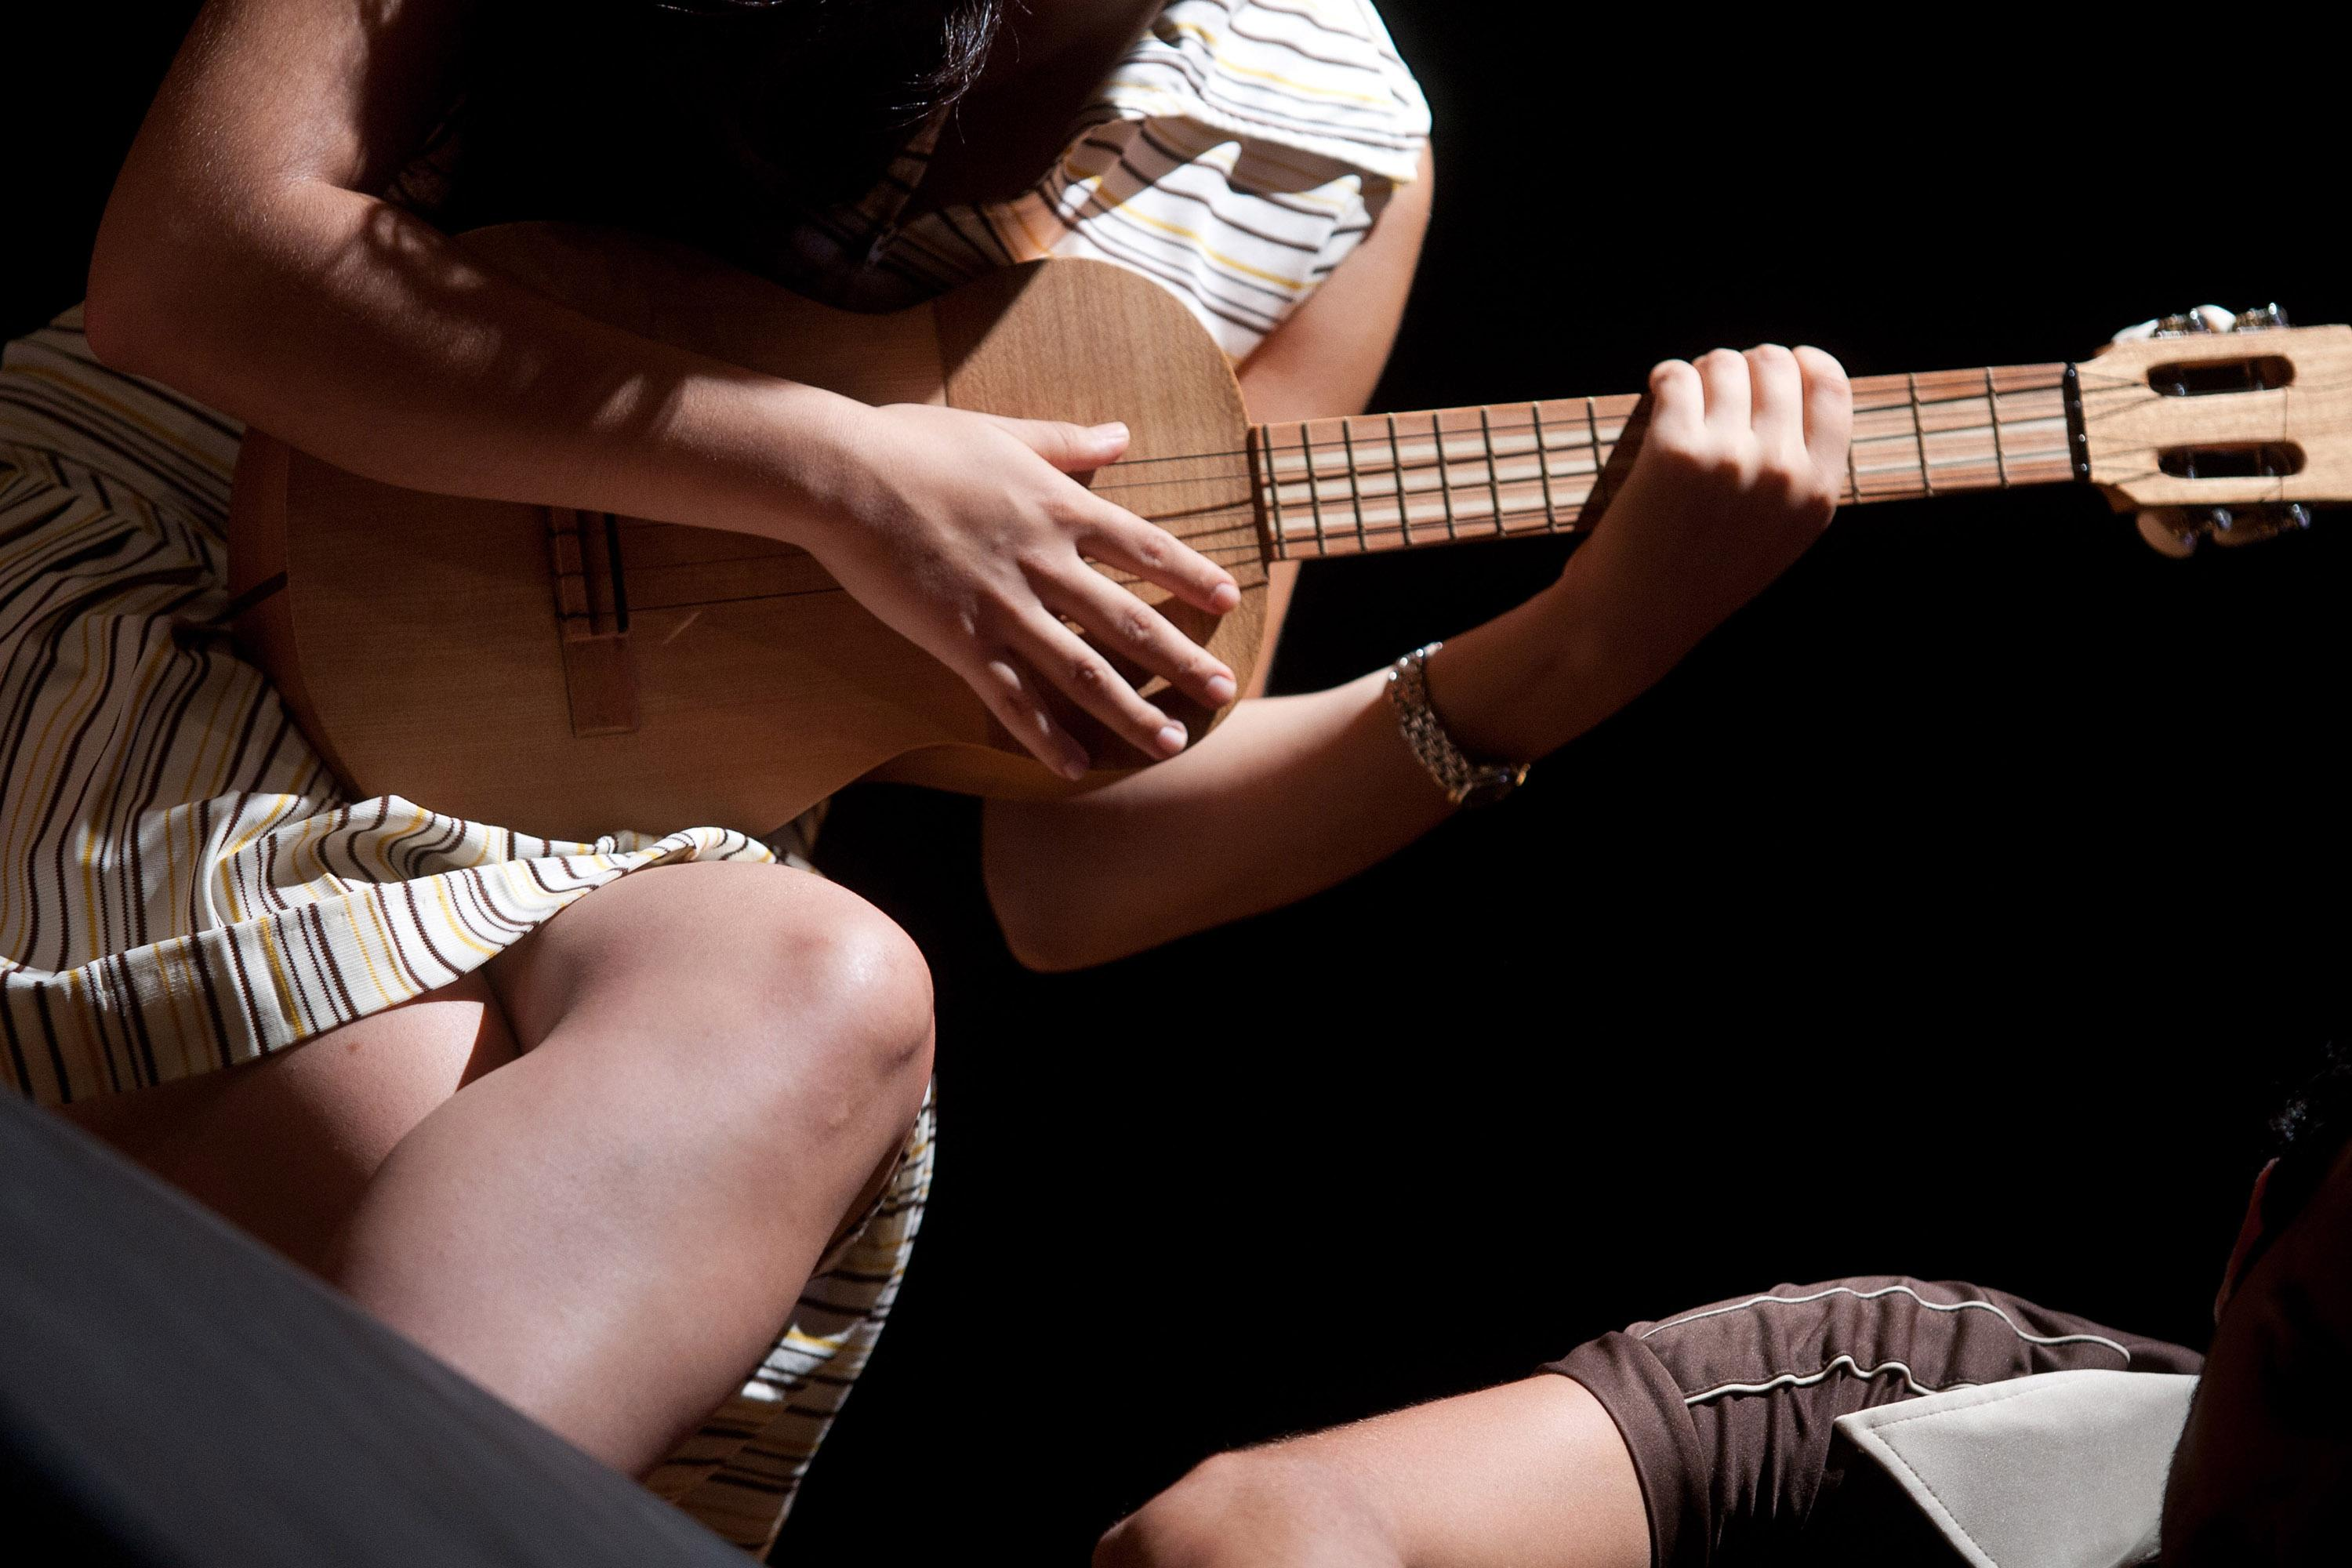 Closely cropped photograph of a seated person wearing a dress, their head off-camera, legs crossed at the knee, cradling a small guitar in a dark space. The upper right arm of an additional person appears at the bottom-righthand corner of the image.